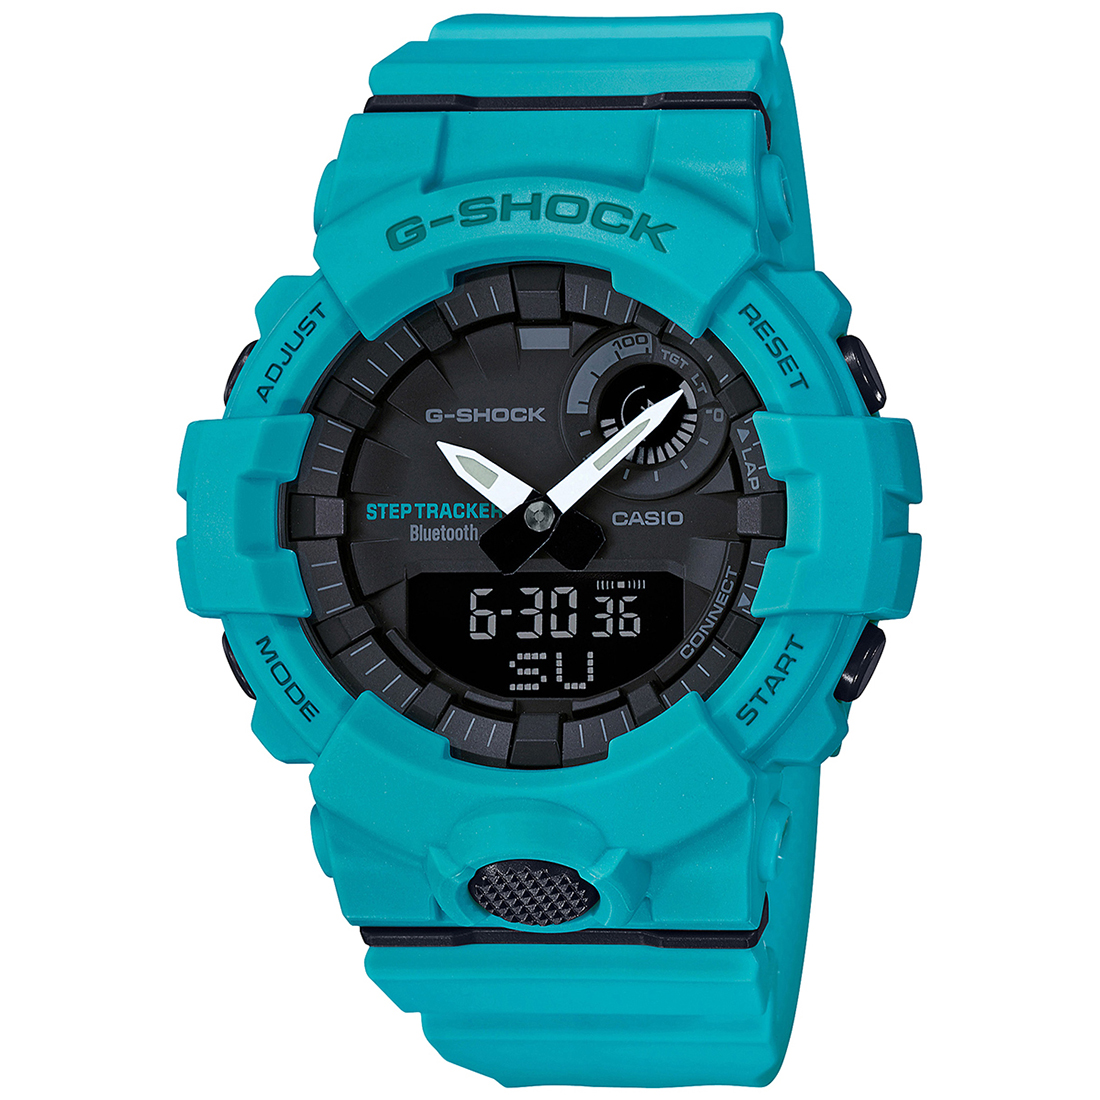 g855 gba-800-2a2dr g-shock watch-G855